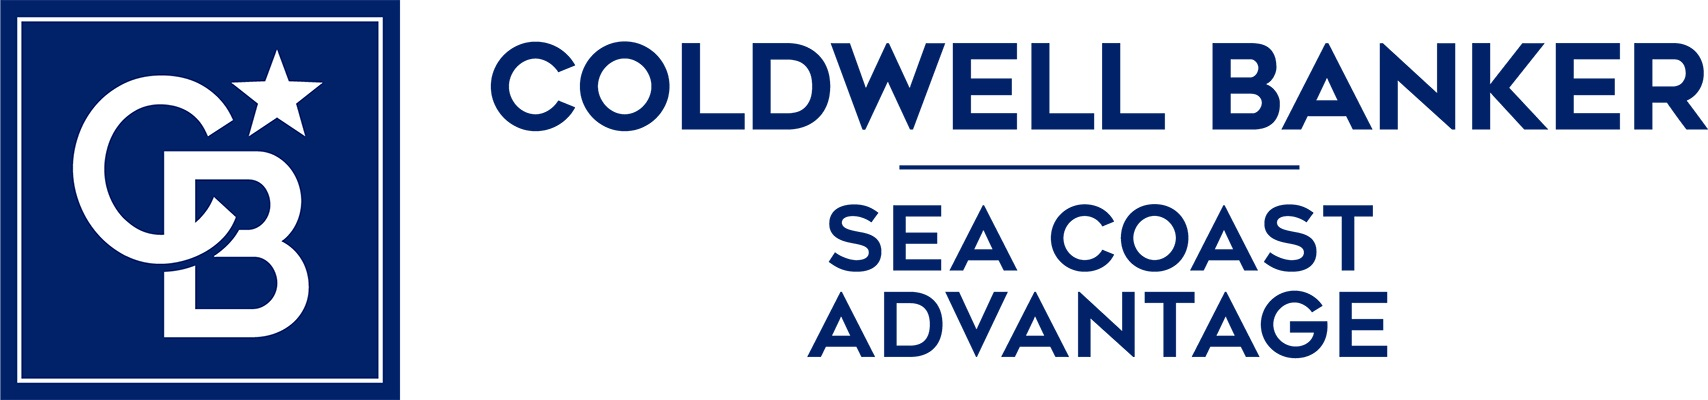 Grae Hawks - Coldwell Banker Sea Coast Advantage Realty